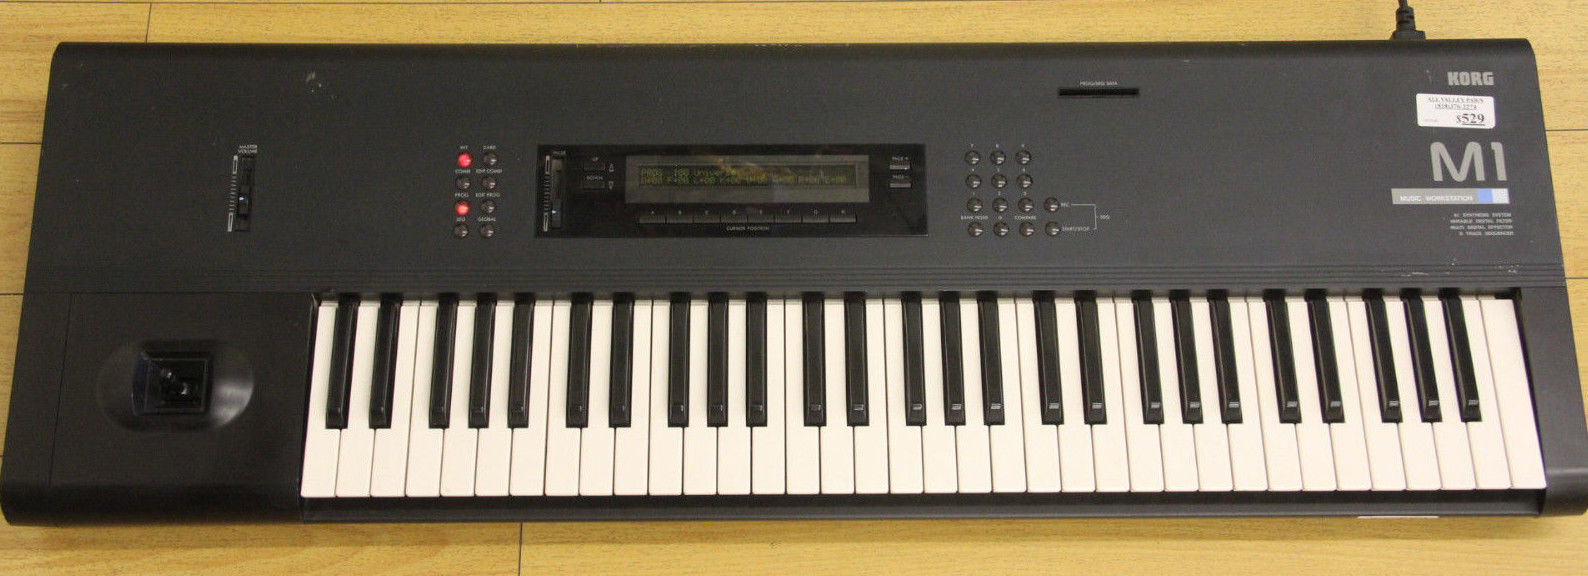 KORG M1 MUSIC WORKSTATION SYNTHESIZER KEYBOARD